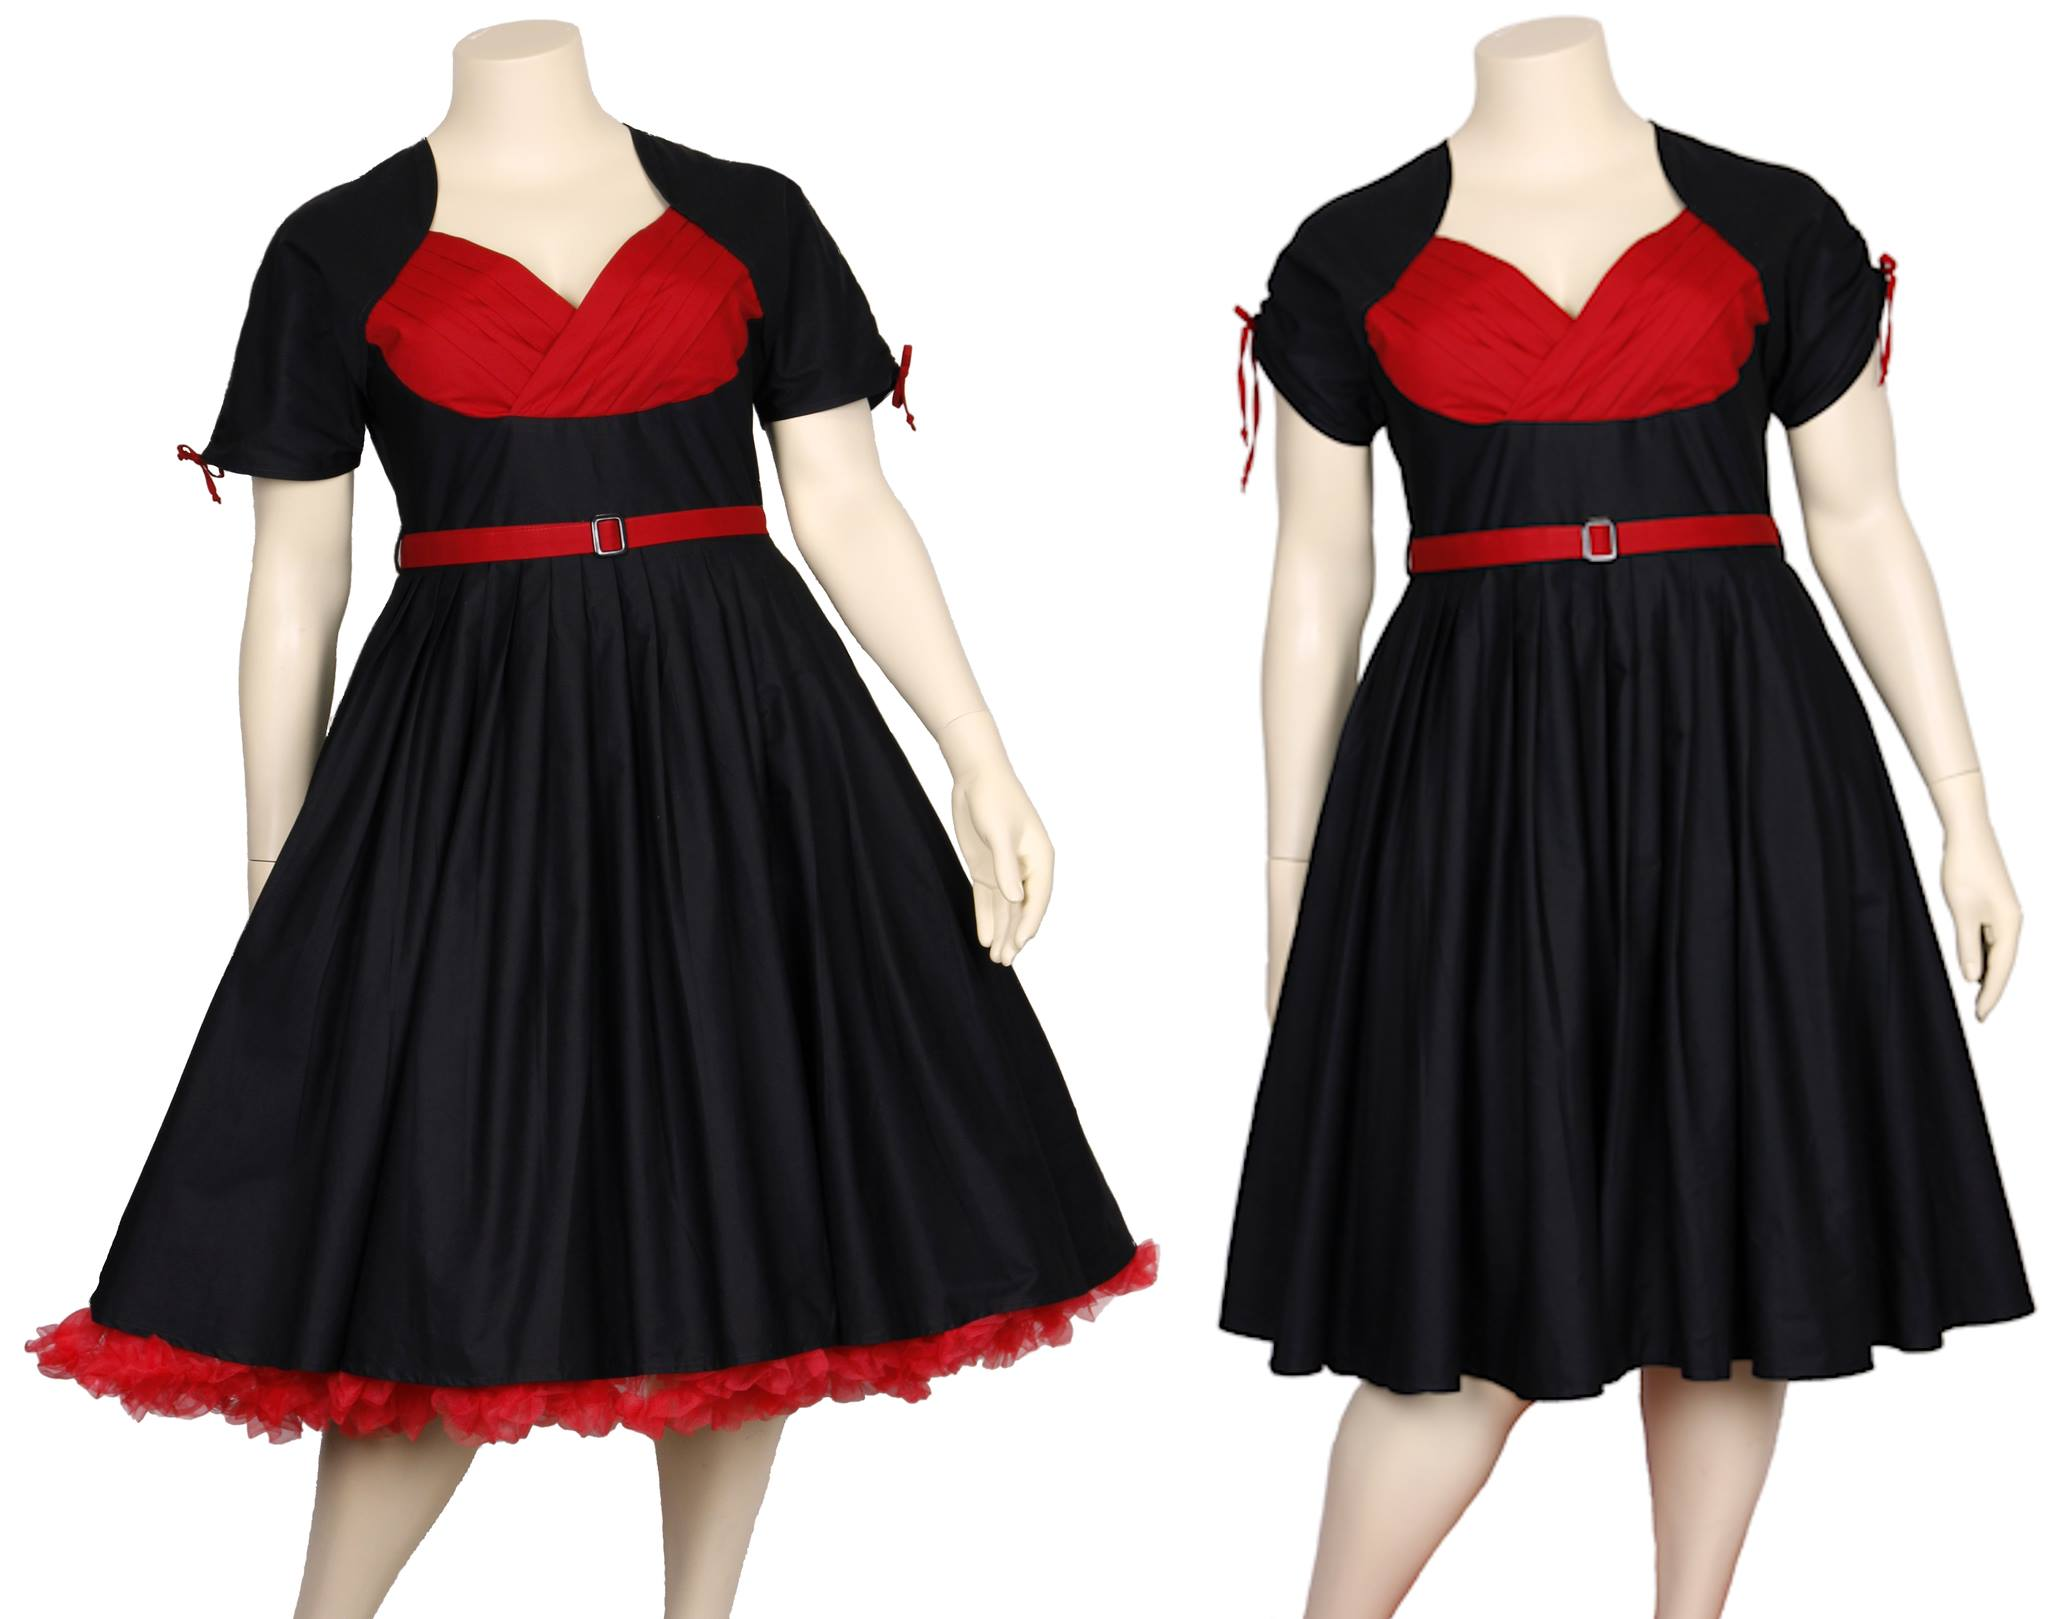 Clothing stores online :: 50s clothing store